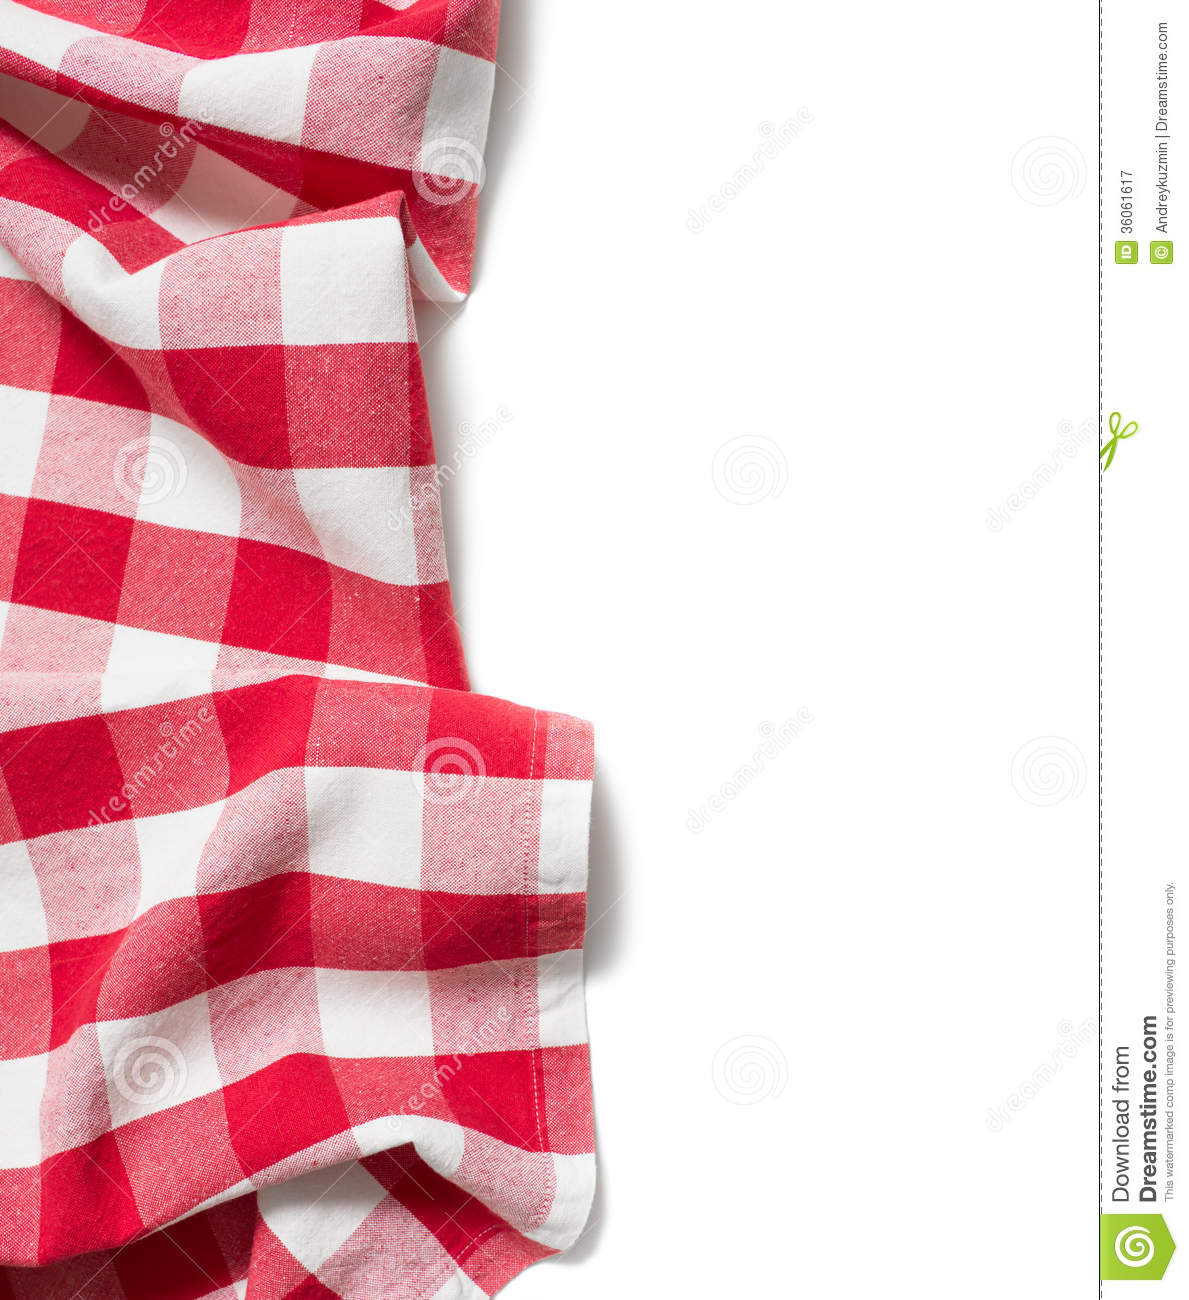 ... Tablecloth Isolated Royalty Free Stock Photography - Image: 36061617